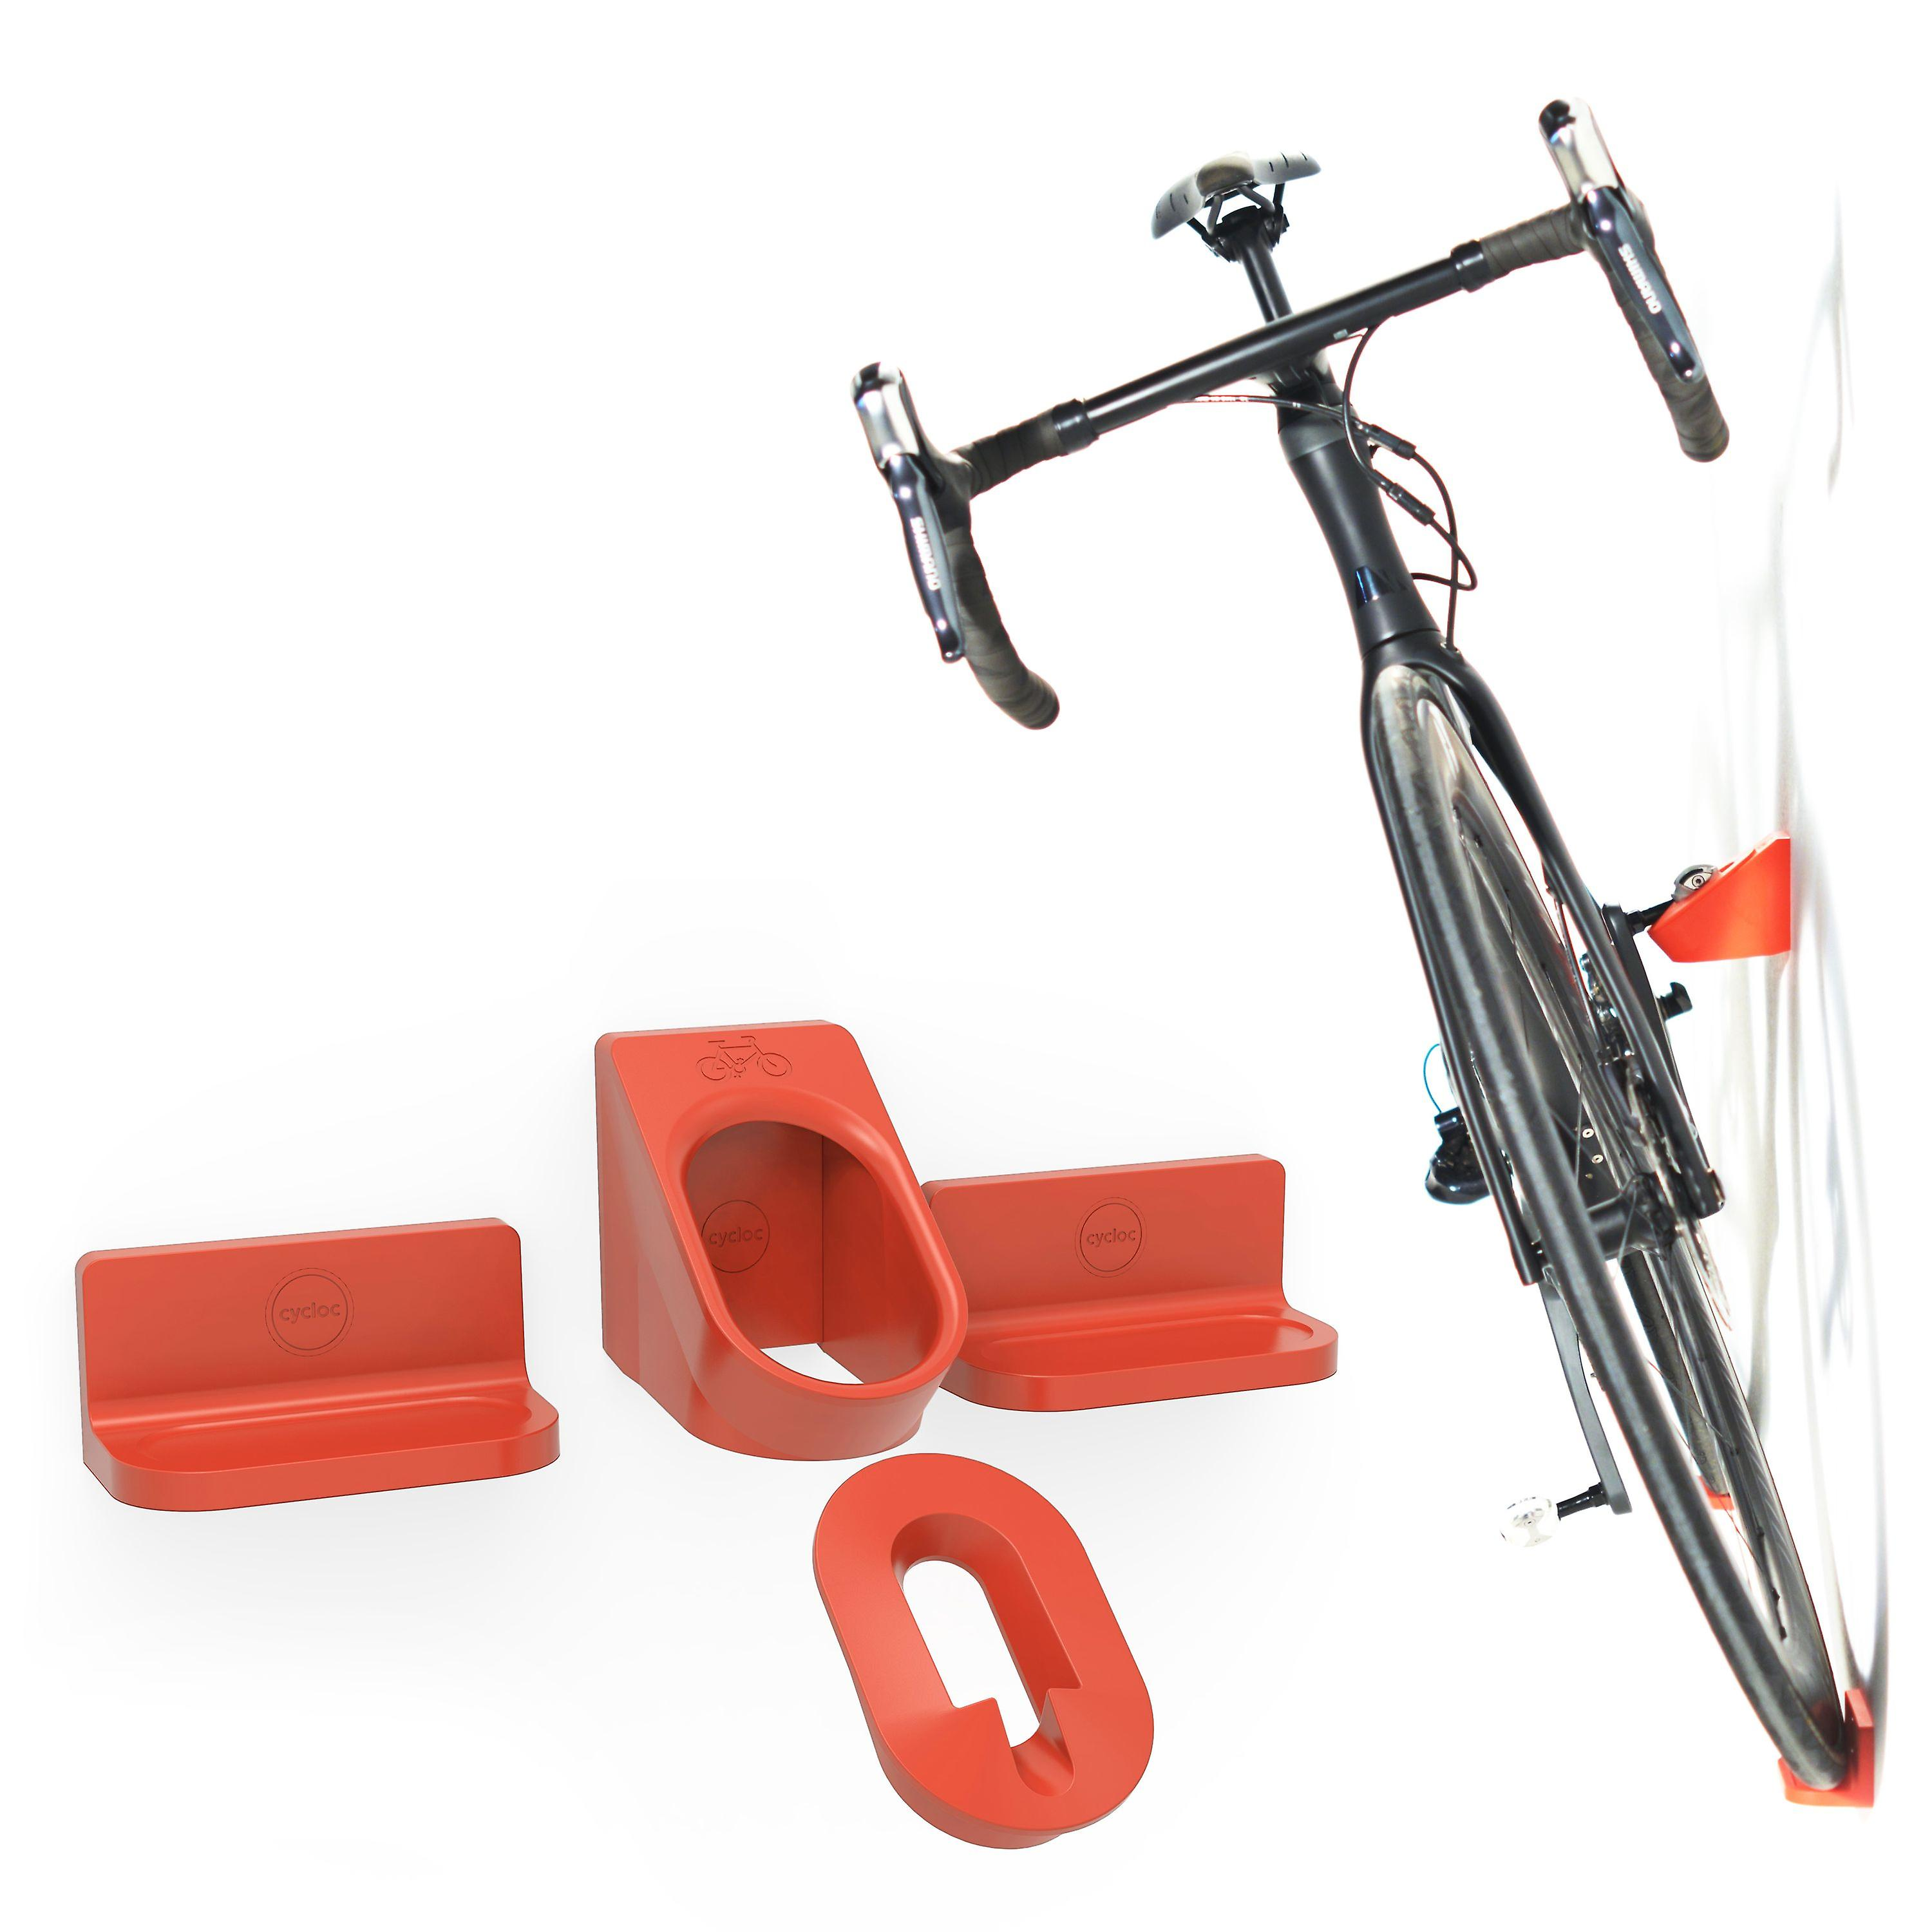 Cycloc Super Hero - Wall Mount Bike Display and Storage for Clipless Pedals